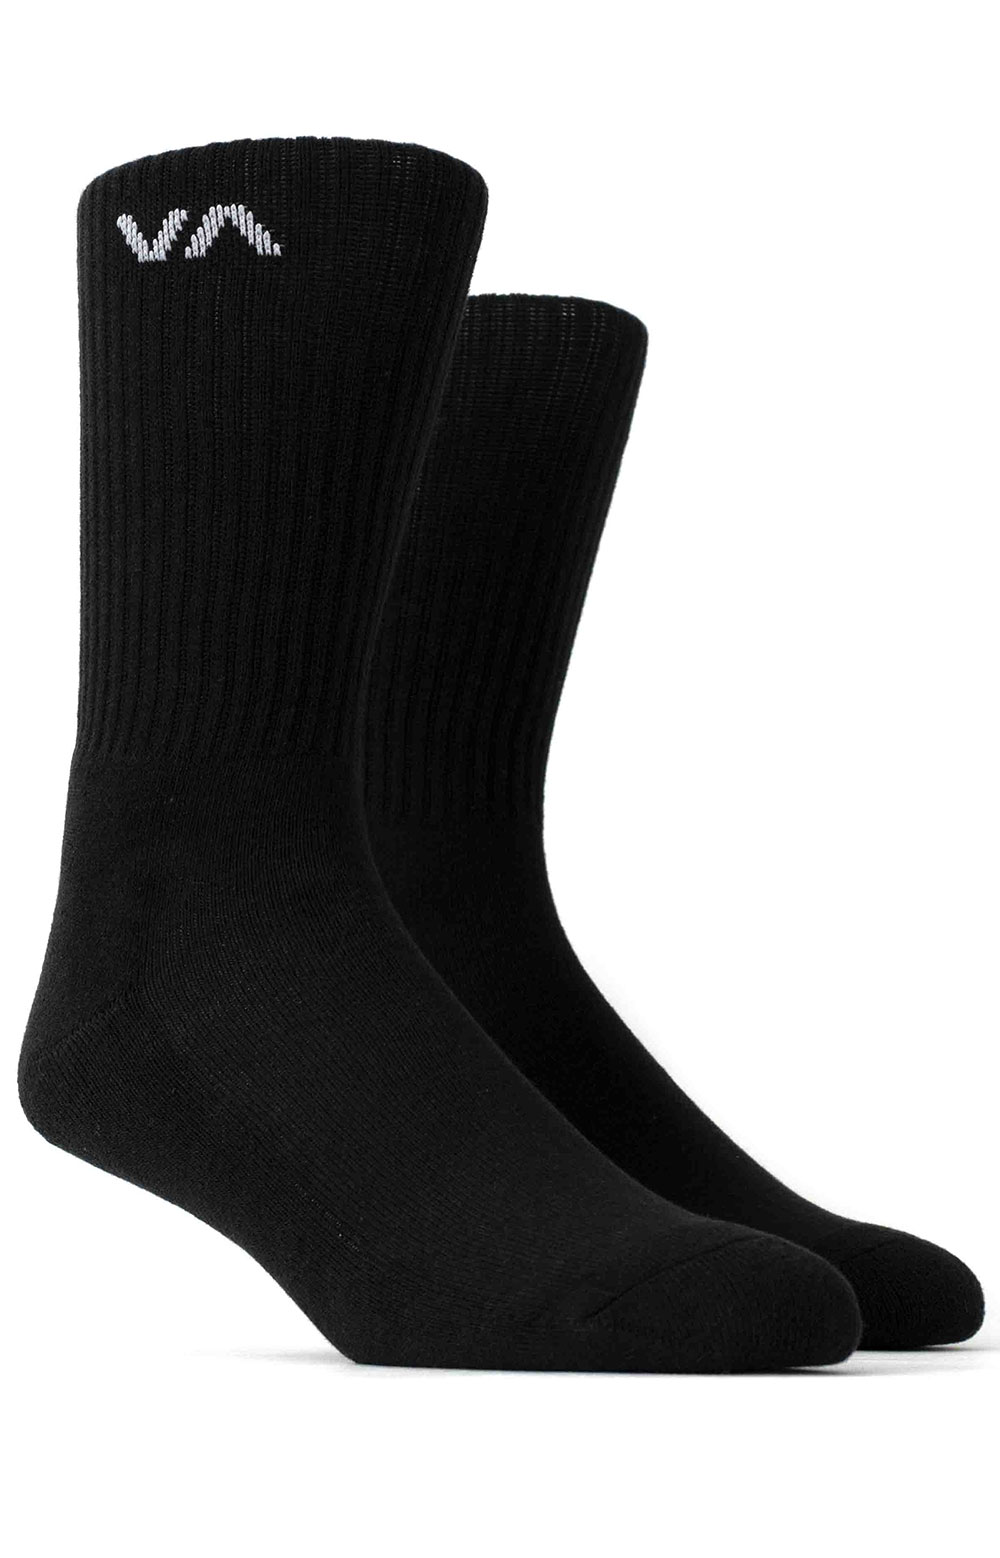 Union Square Socks - Black 2